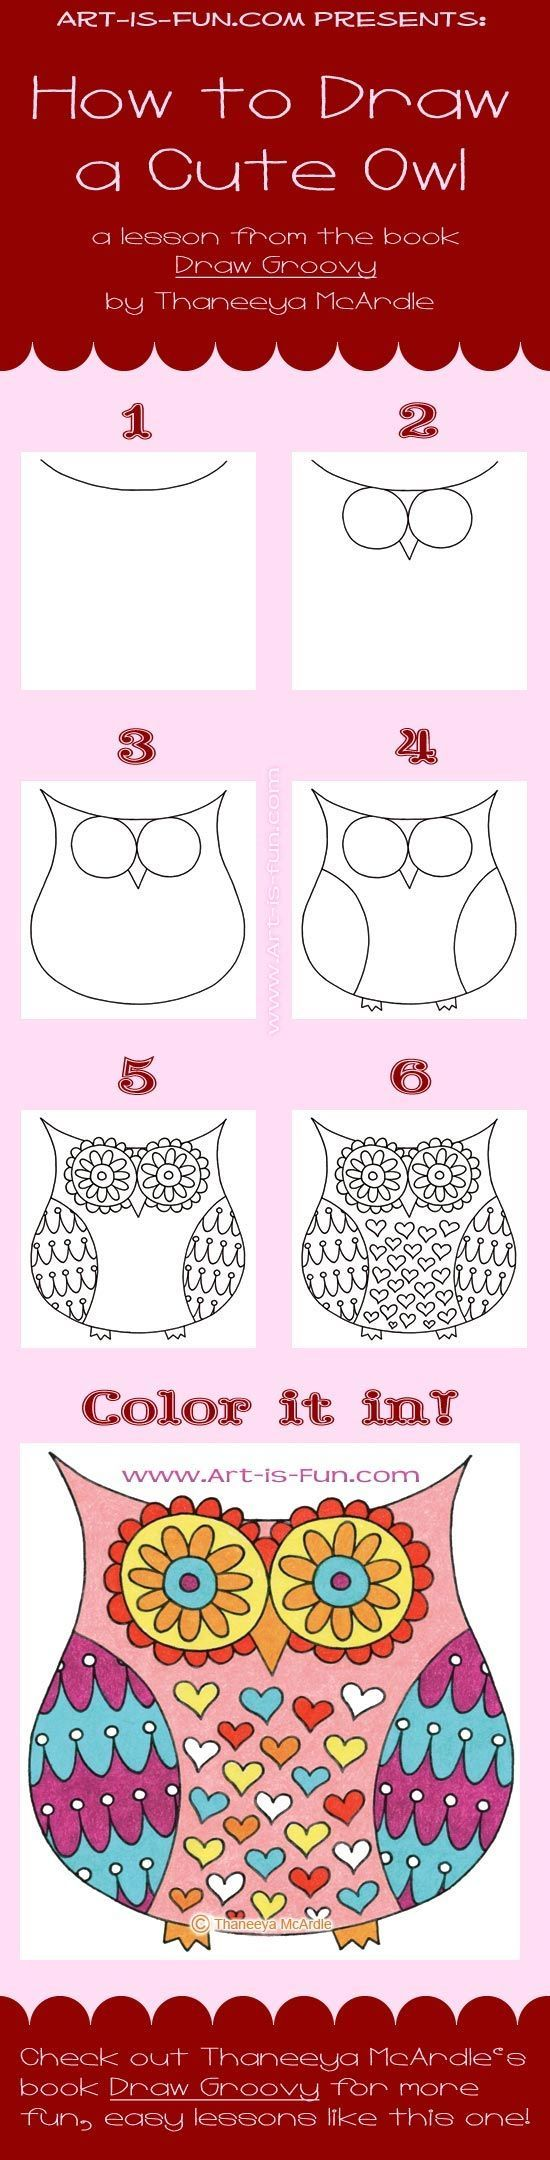 Cool diy tutorial for drawing abstrack owl!! Great page www.art-is-fun.com